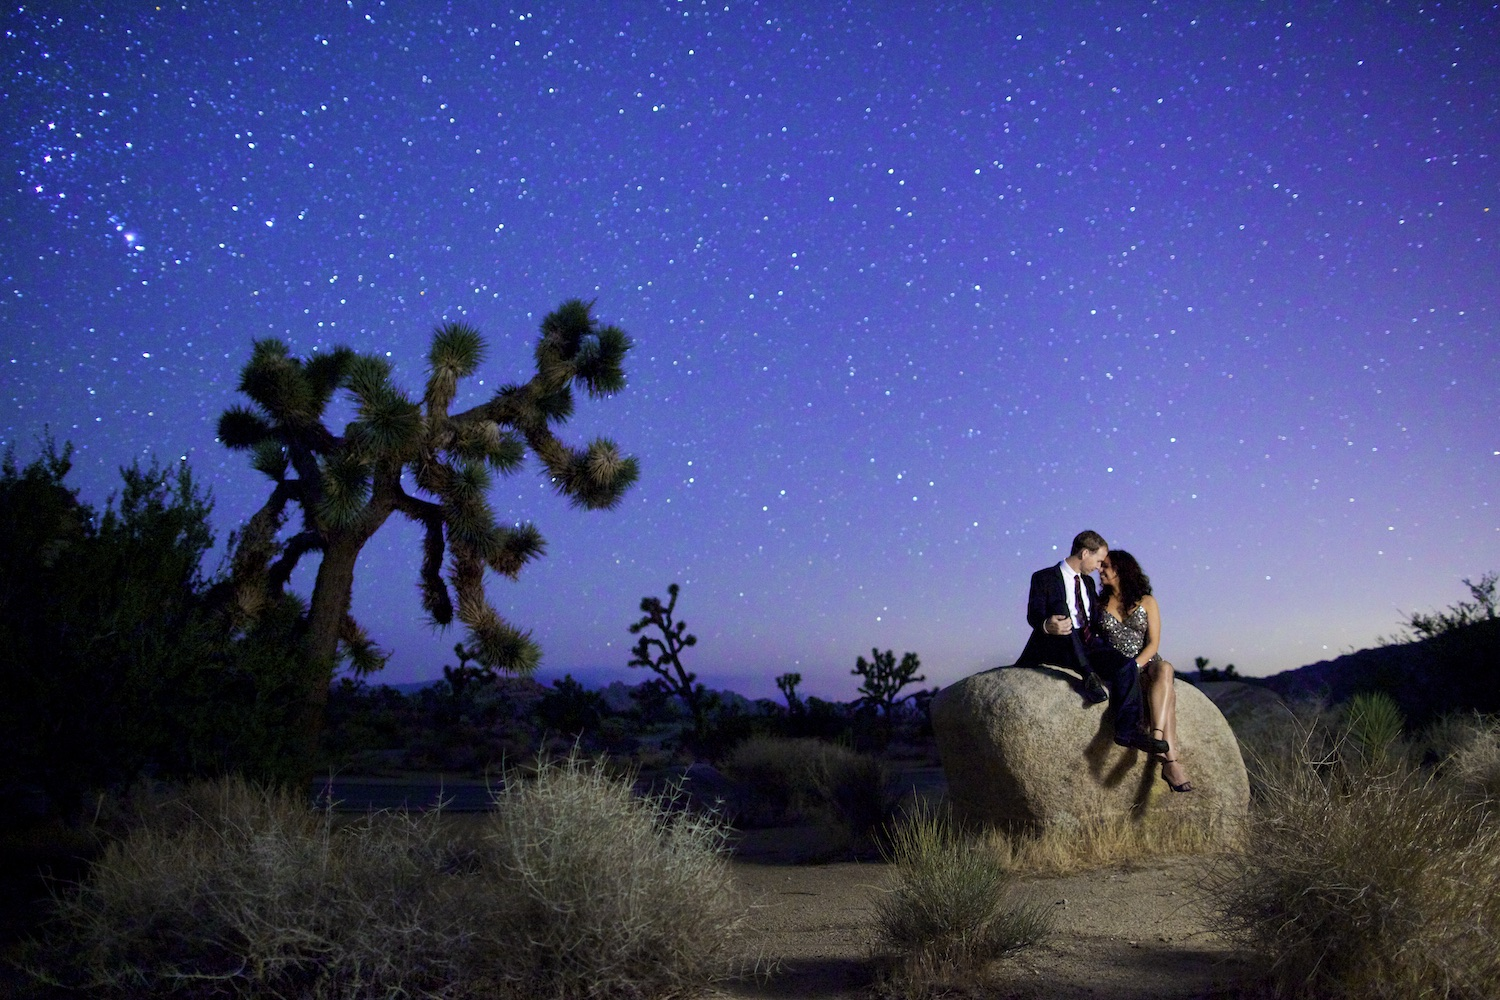 Joshua Tree Astro Photography Engagement Session